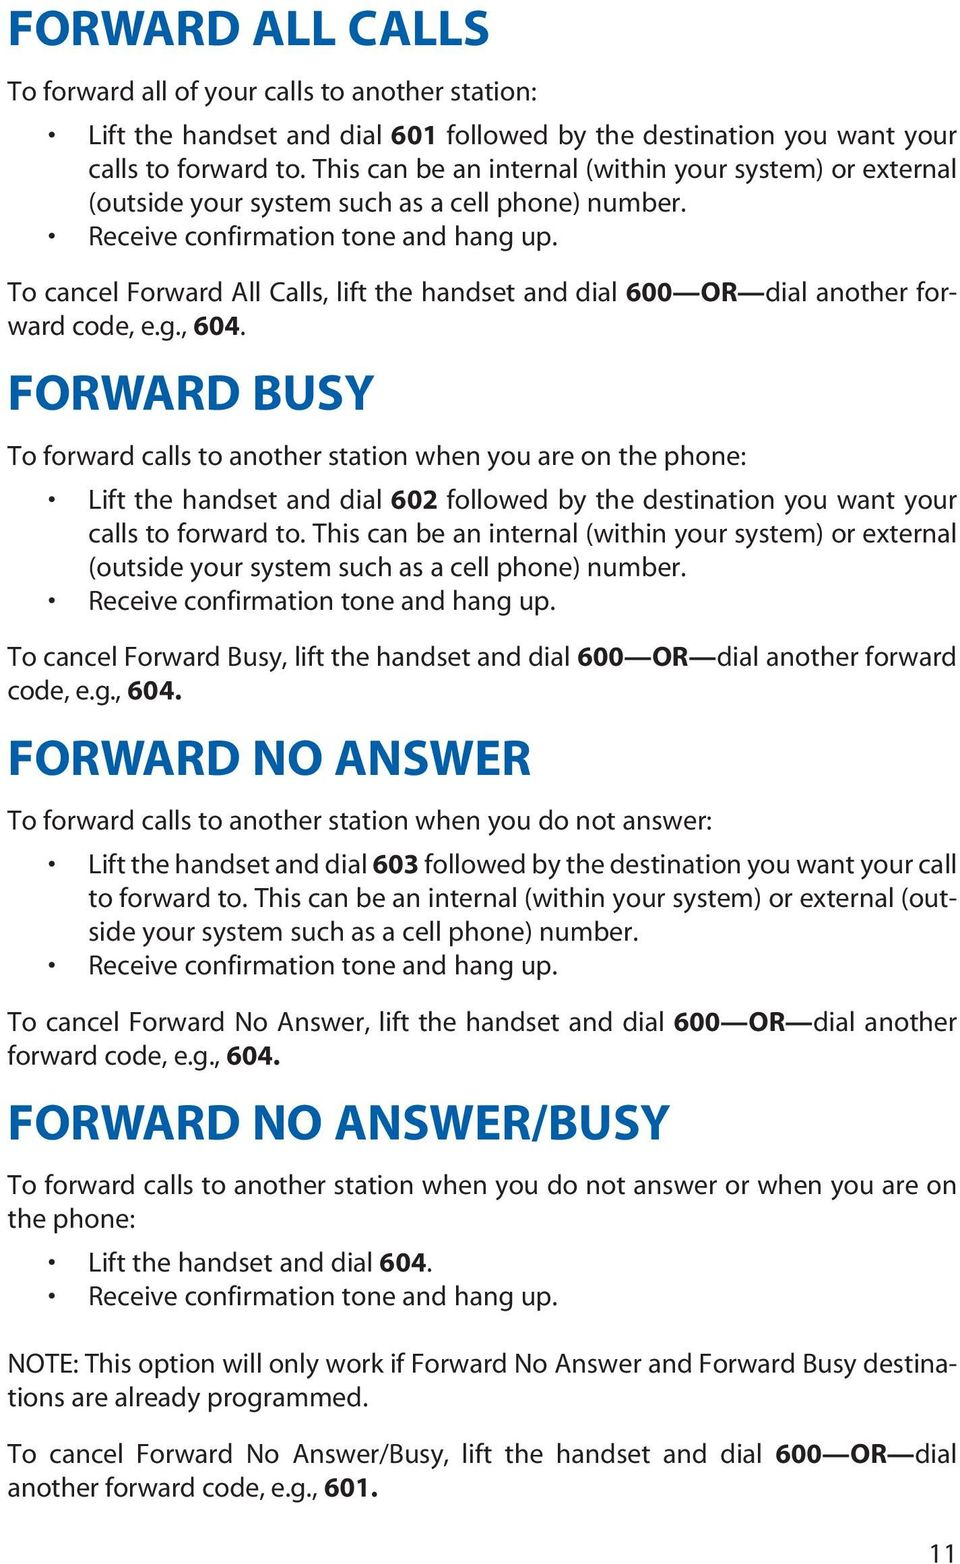 To cancel Forward All Calls, lift the handset and dial 600 OR dial another forward code, e.g., 604.